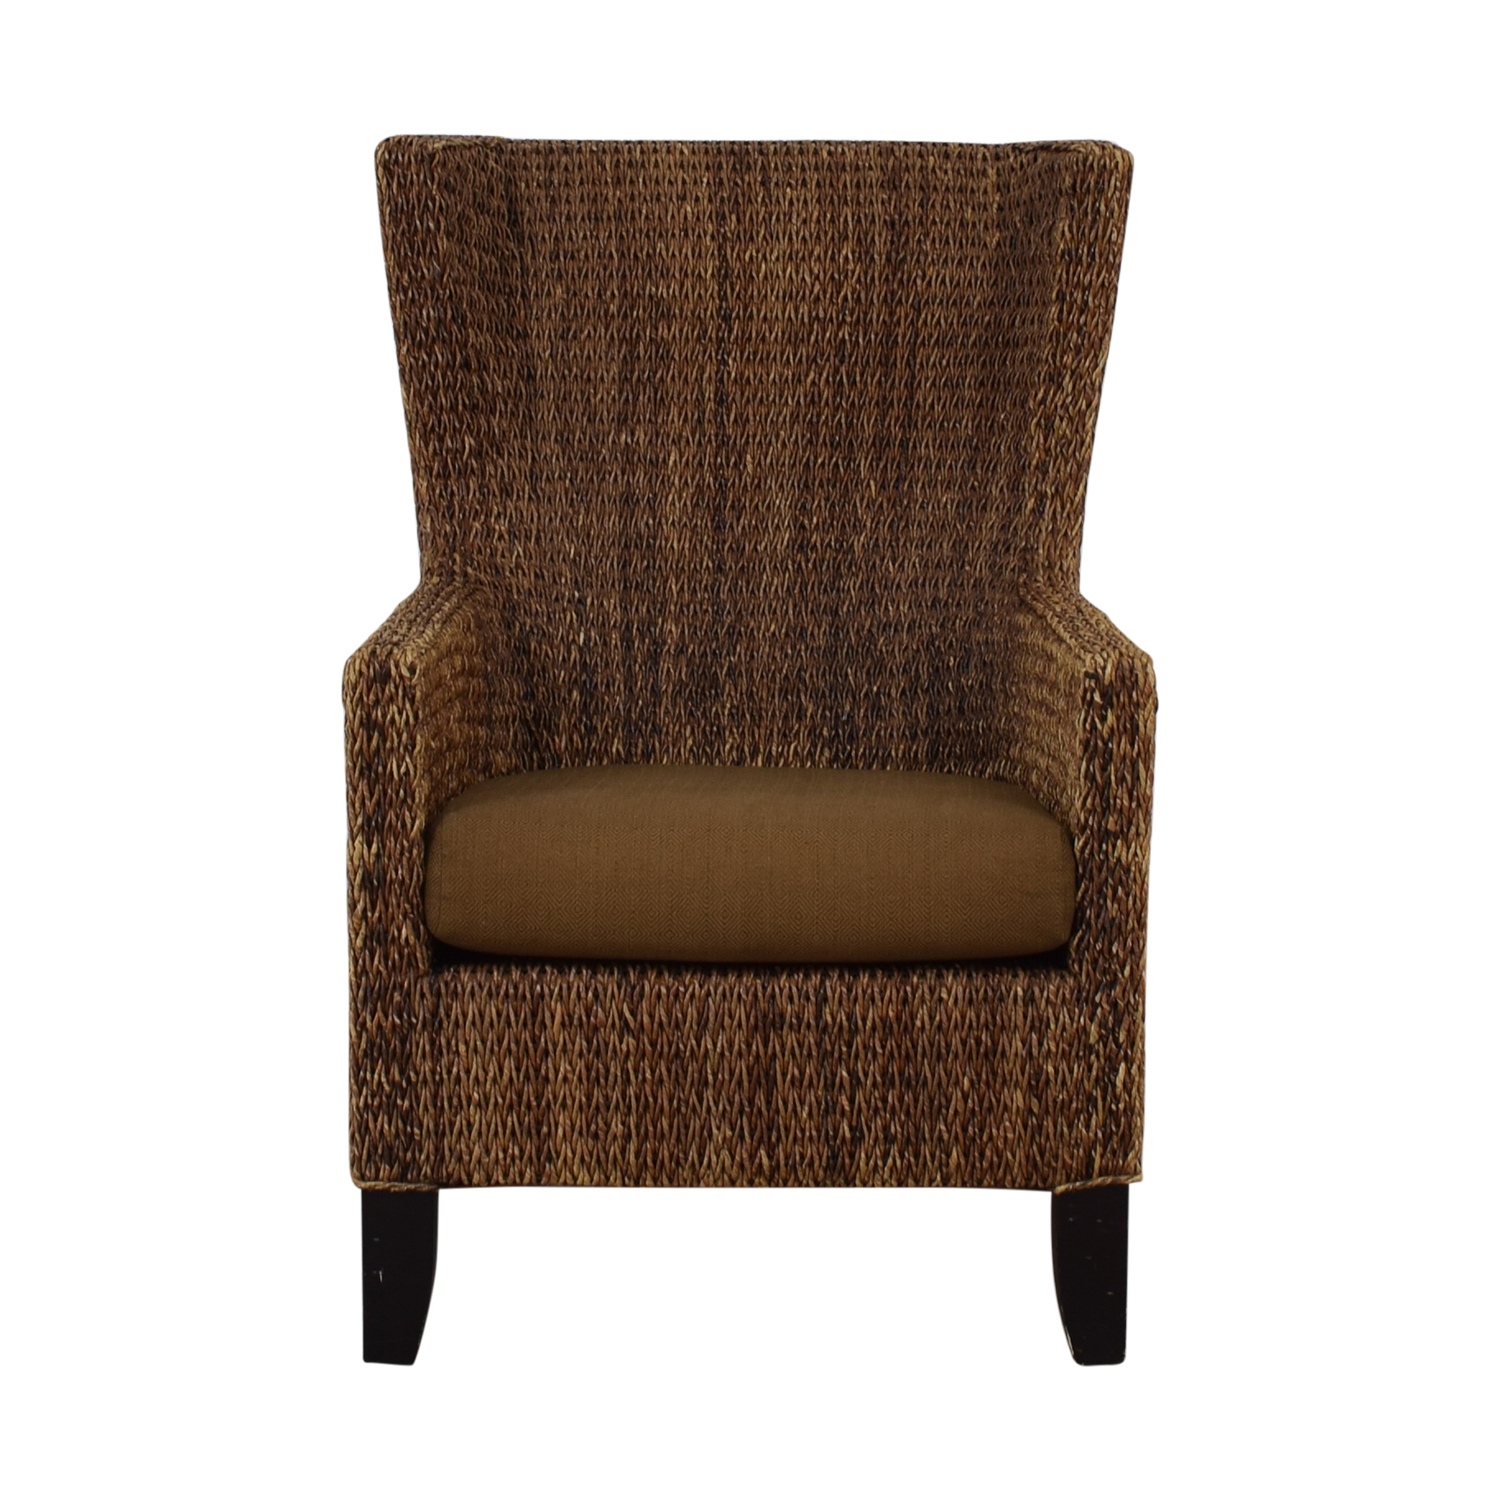 Crate & Barrel Crate & Barrel Fiji Woven Chair With Cushion